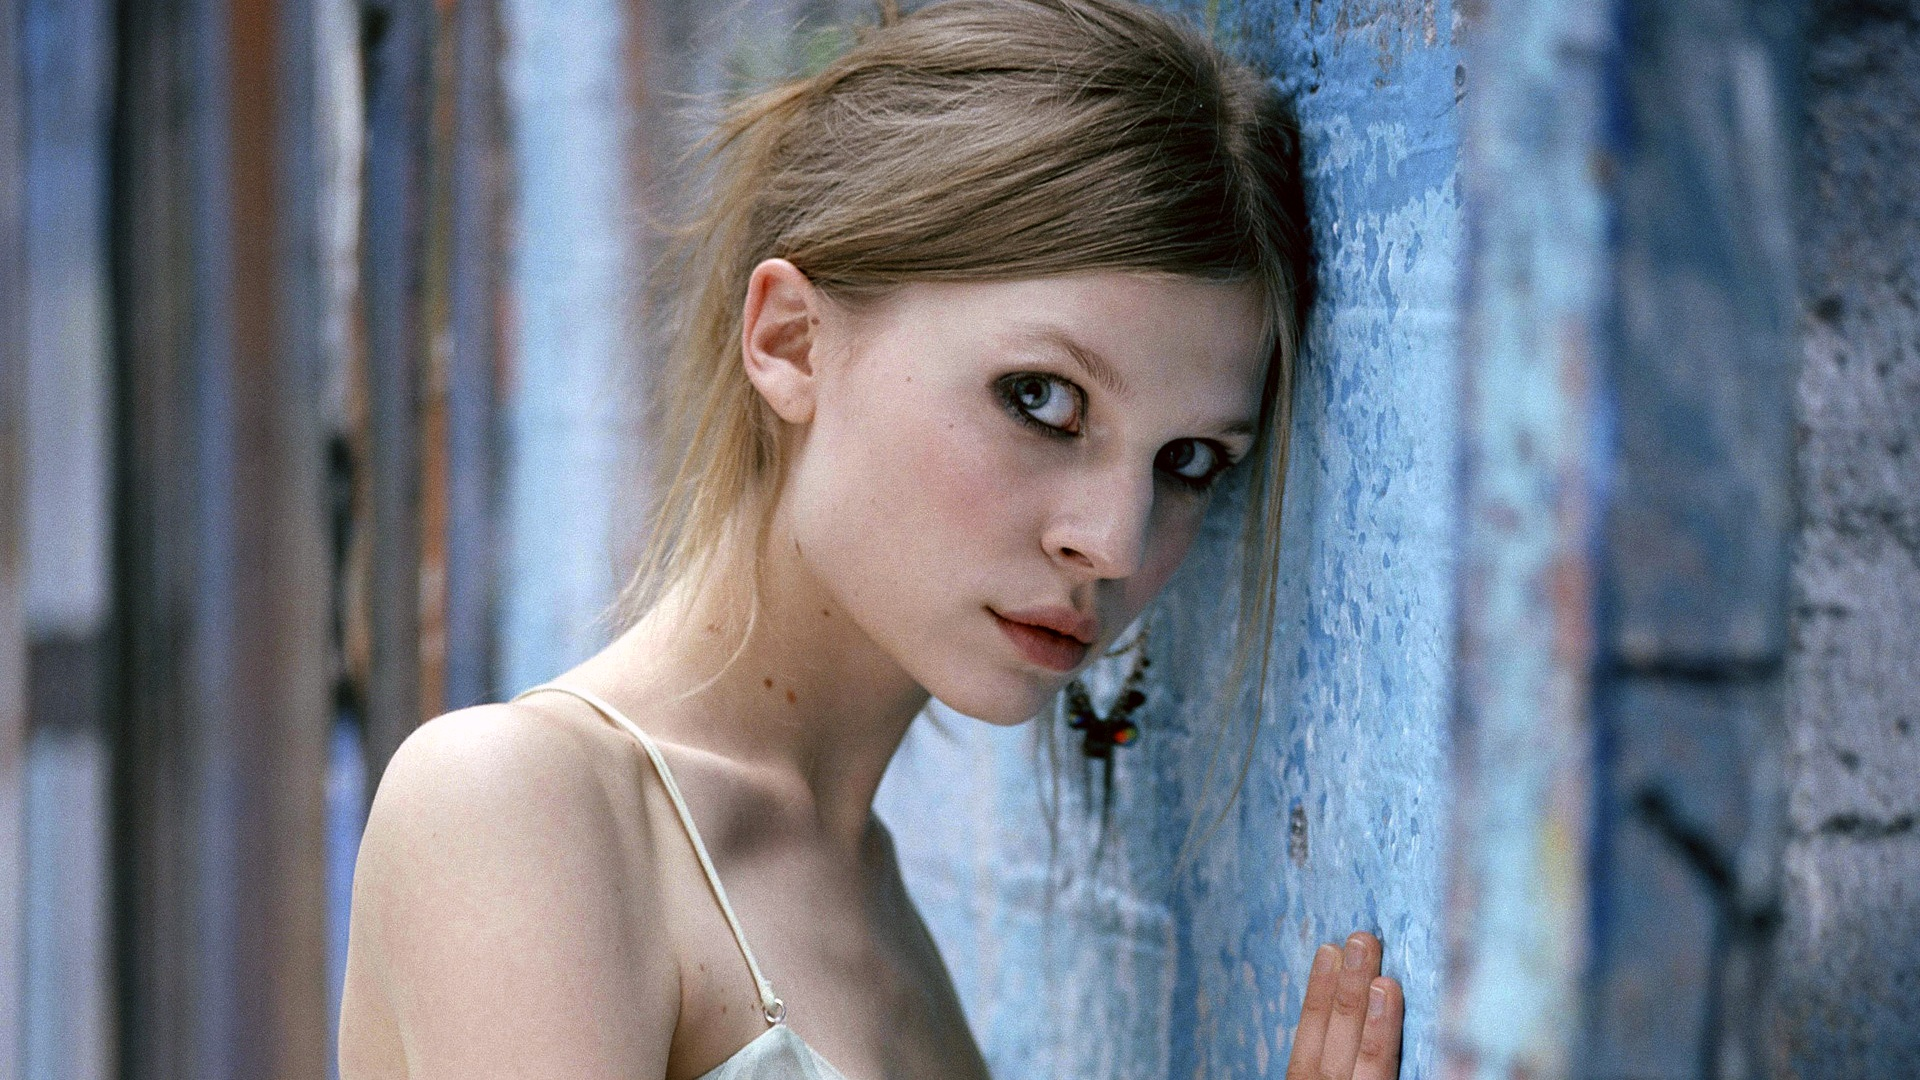 Wallpaper clemence poesy 01 1920x1200 hd picture image widescreen voltagebd Images